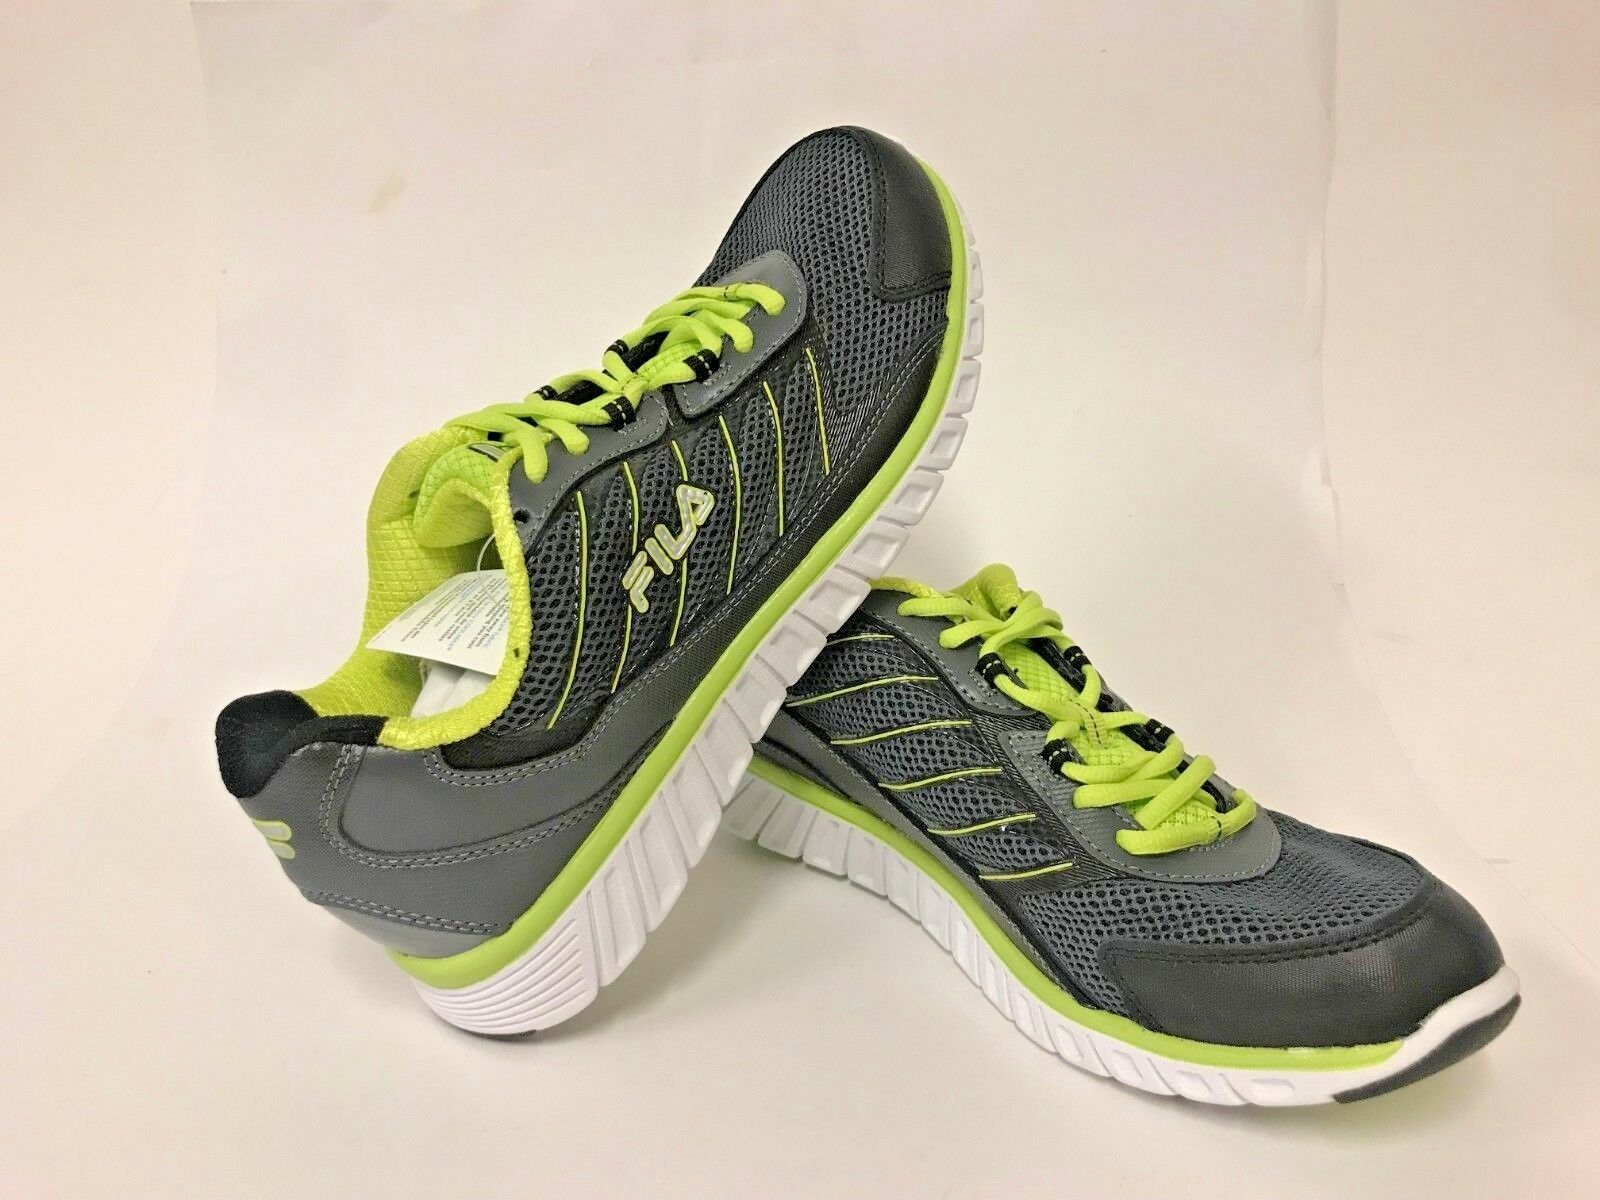 Brand New Fila Running Shoes For Men!! Brand discount